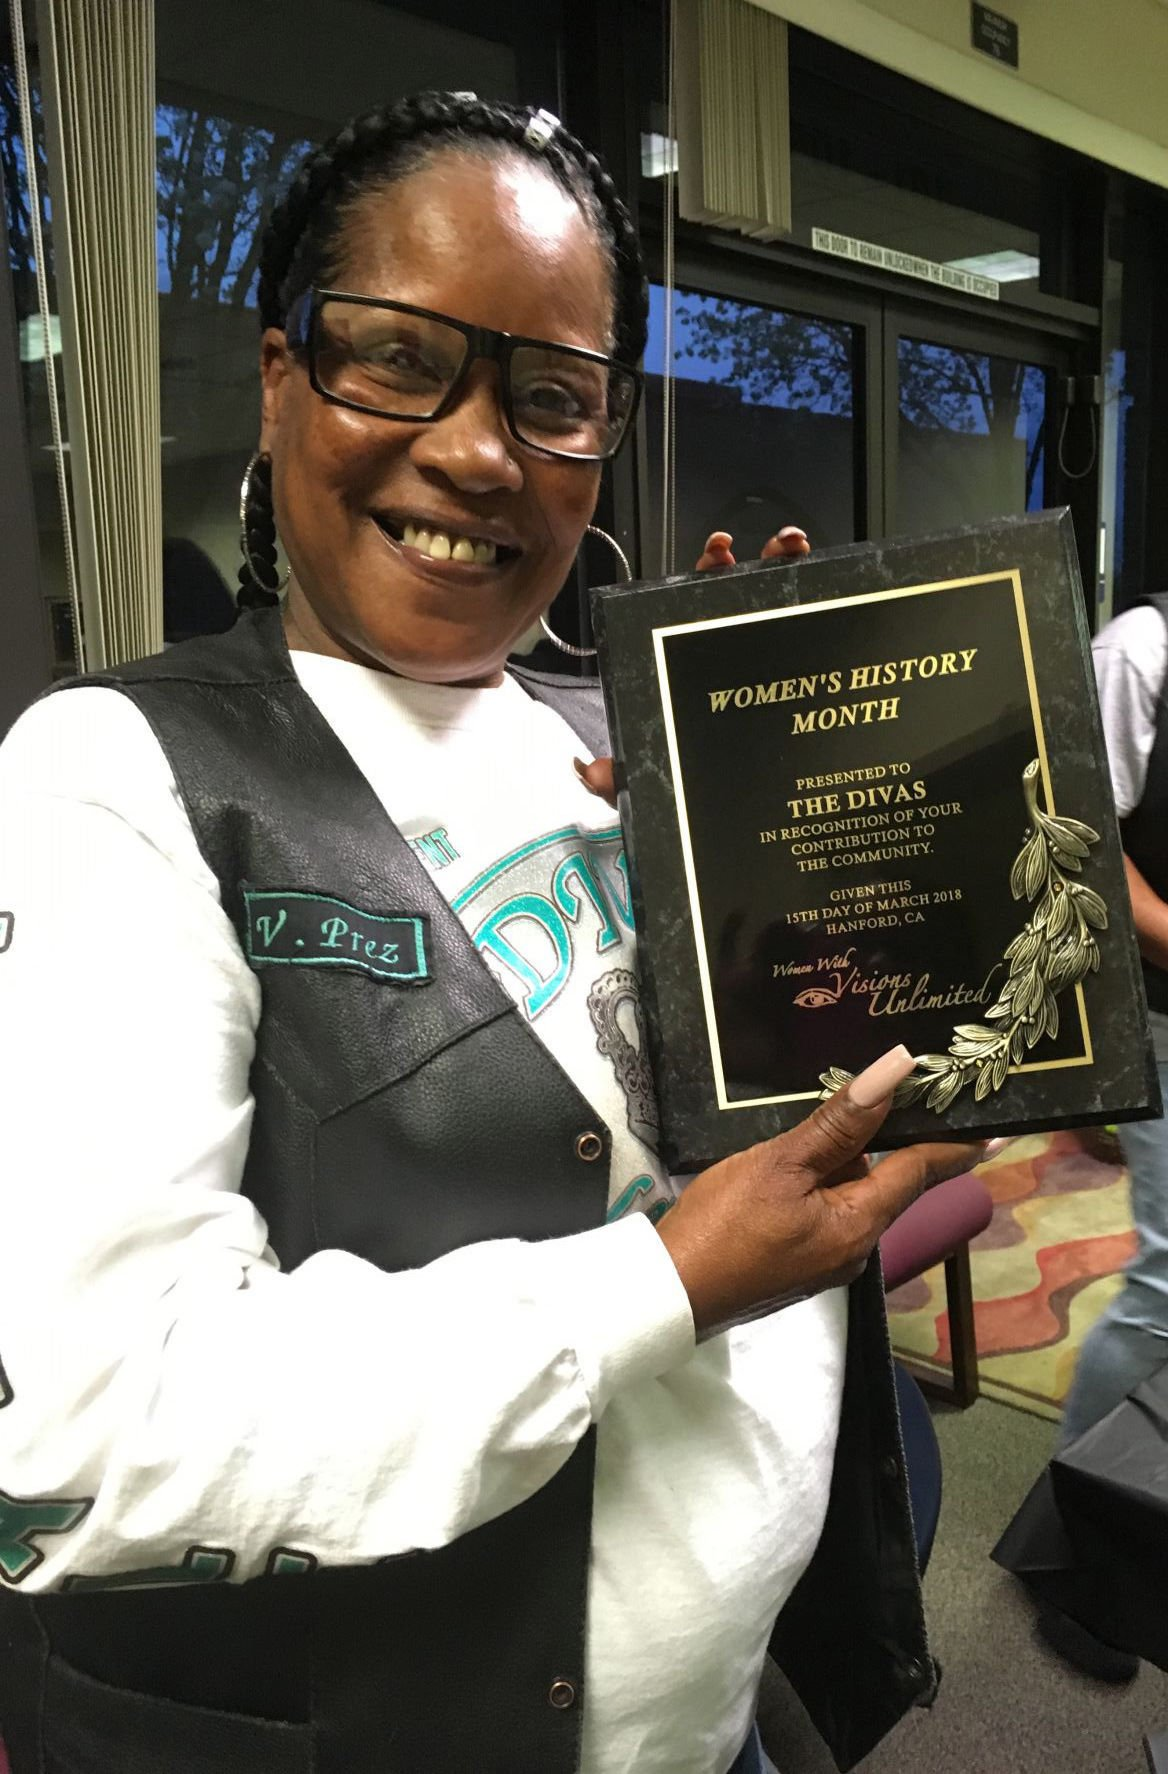 The Divas Social Club recognized for their service